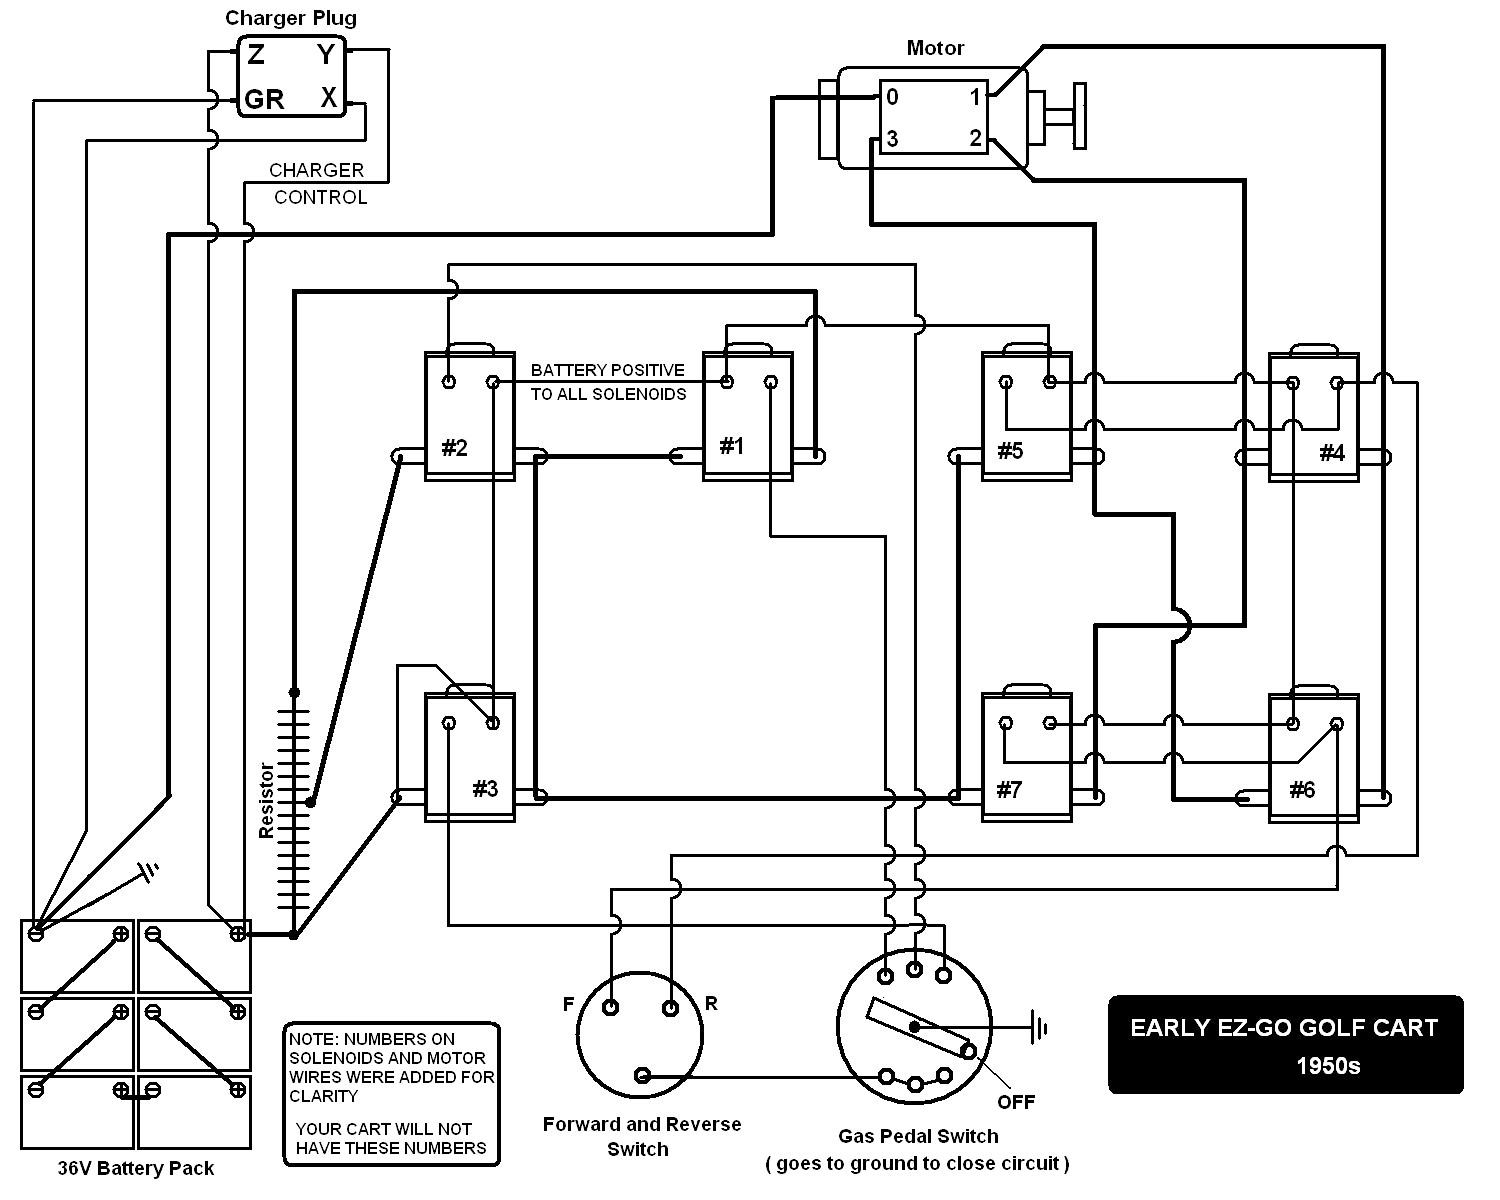 1989 ez go wiring diagram wiring diagram1989 ez go wiring diagram